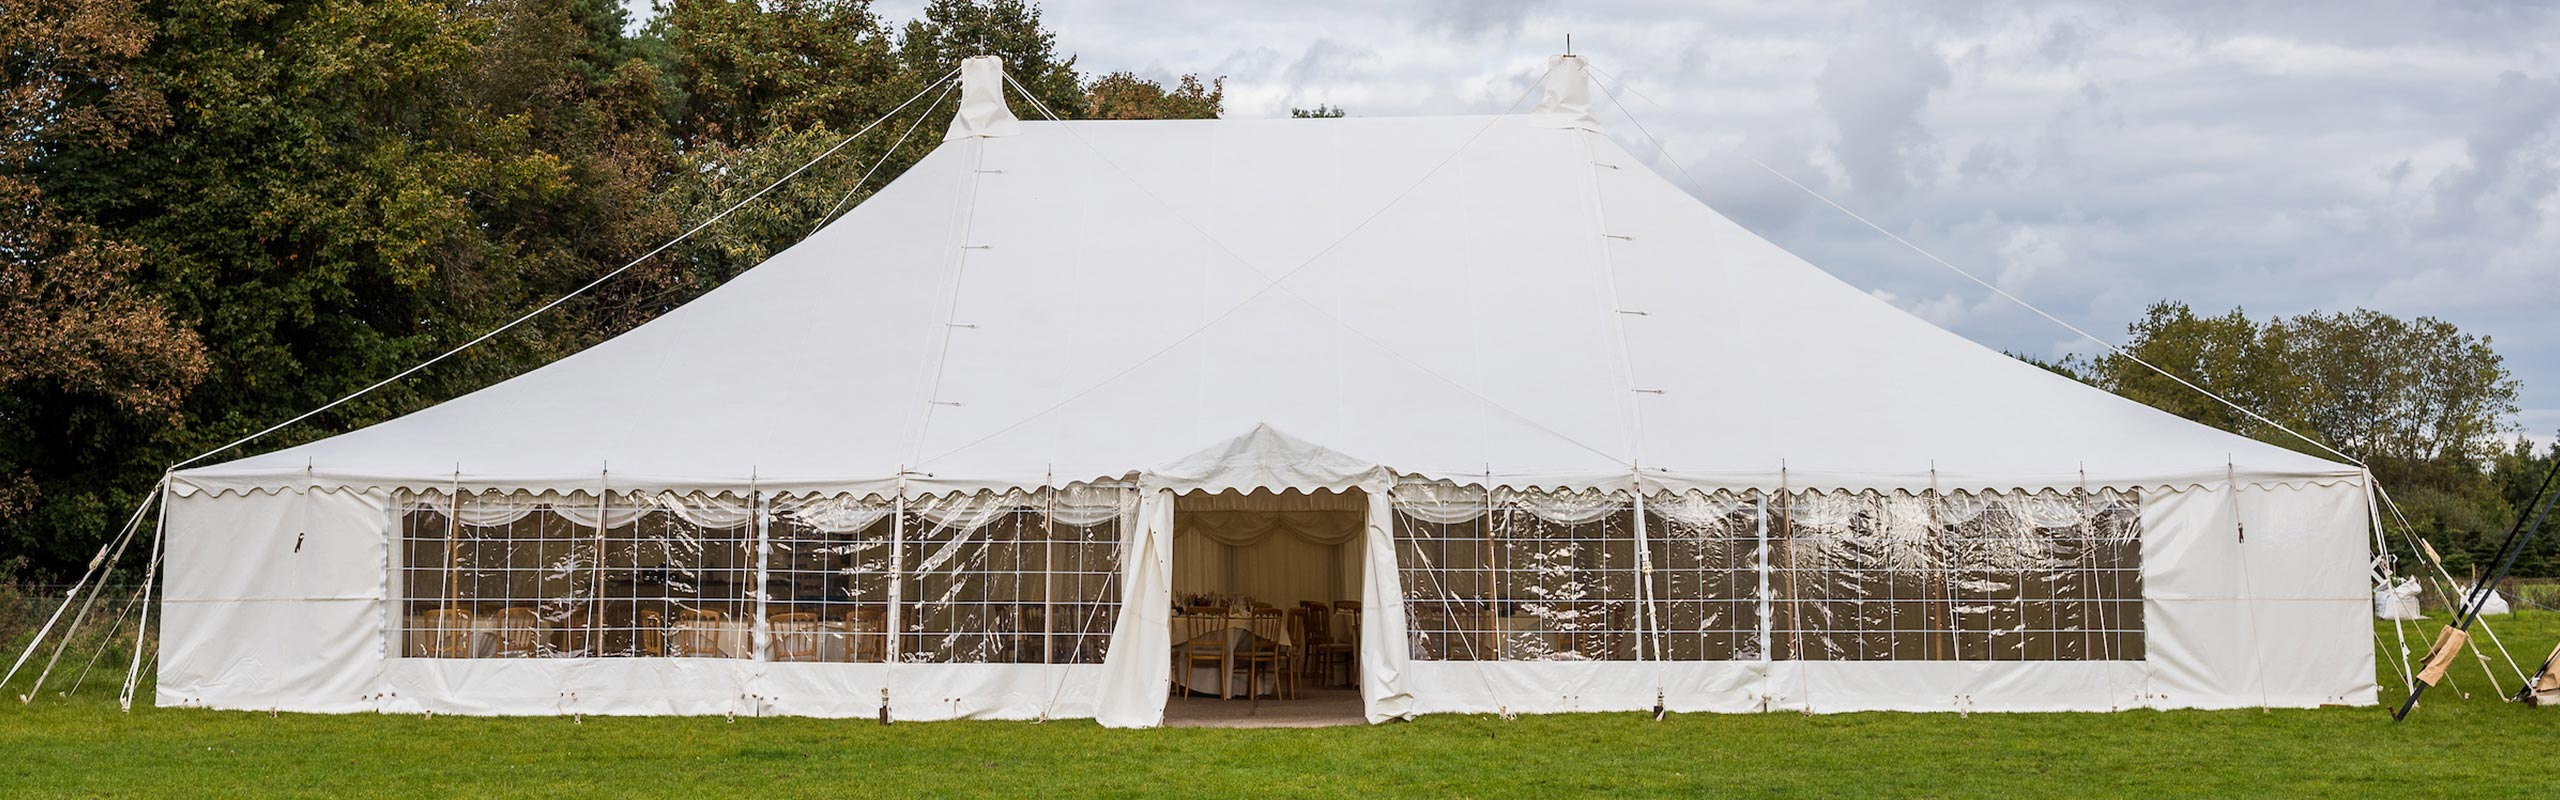 Marquees hire Suffolk